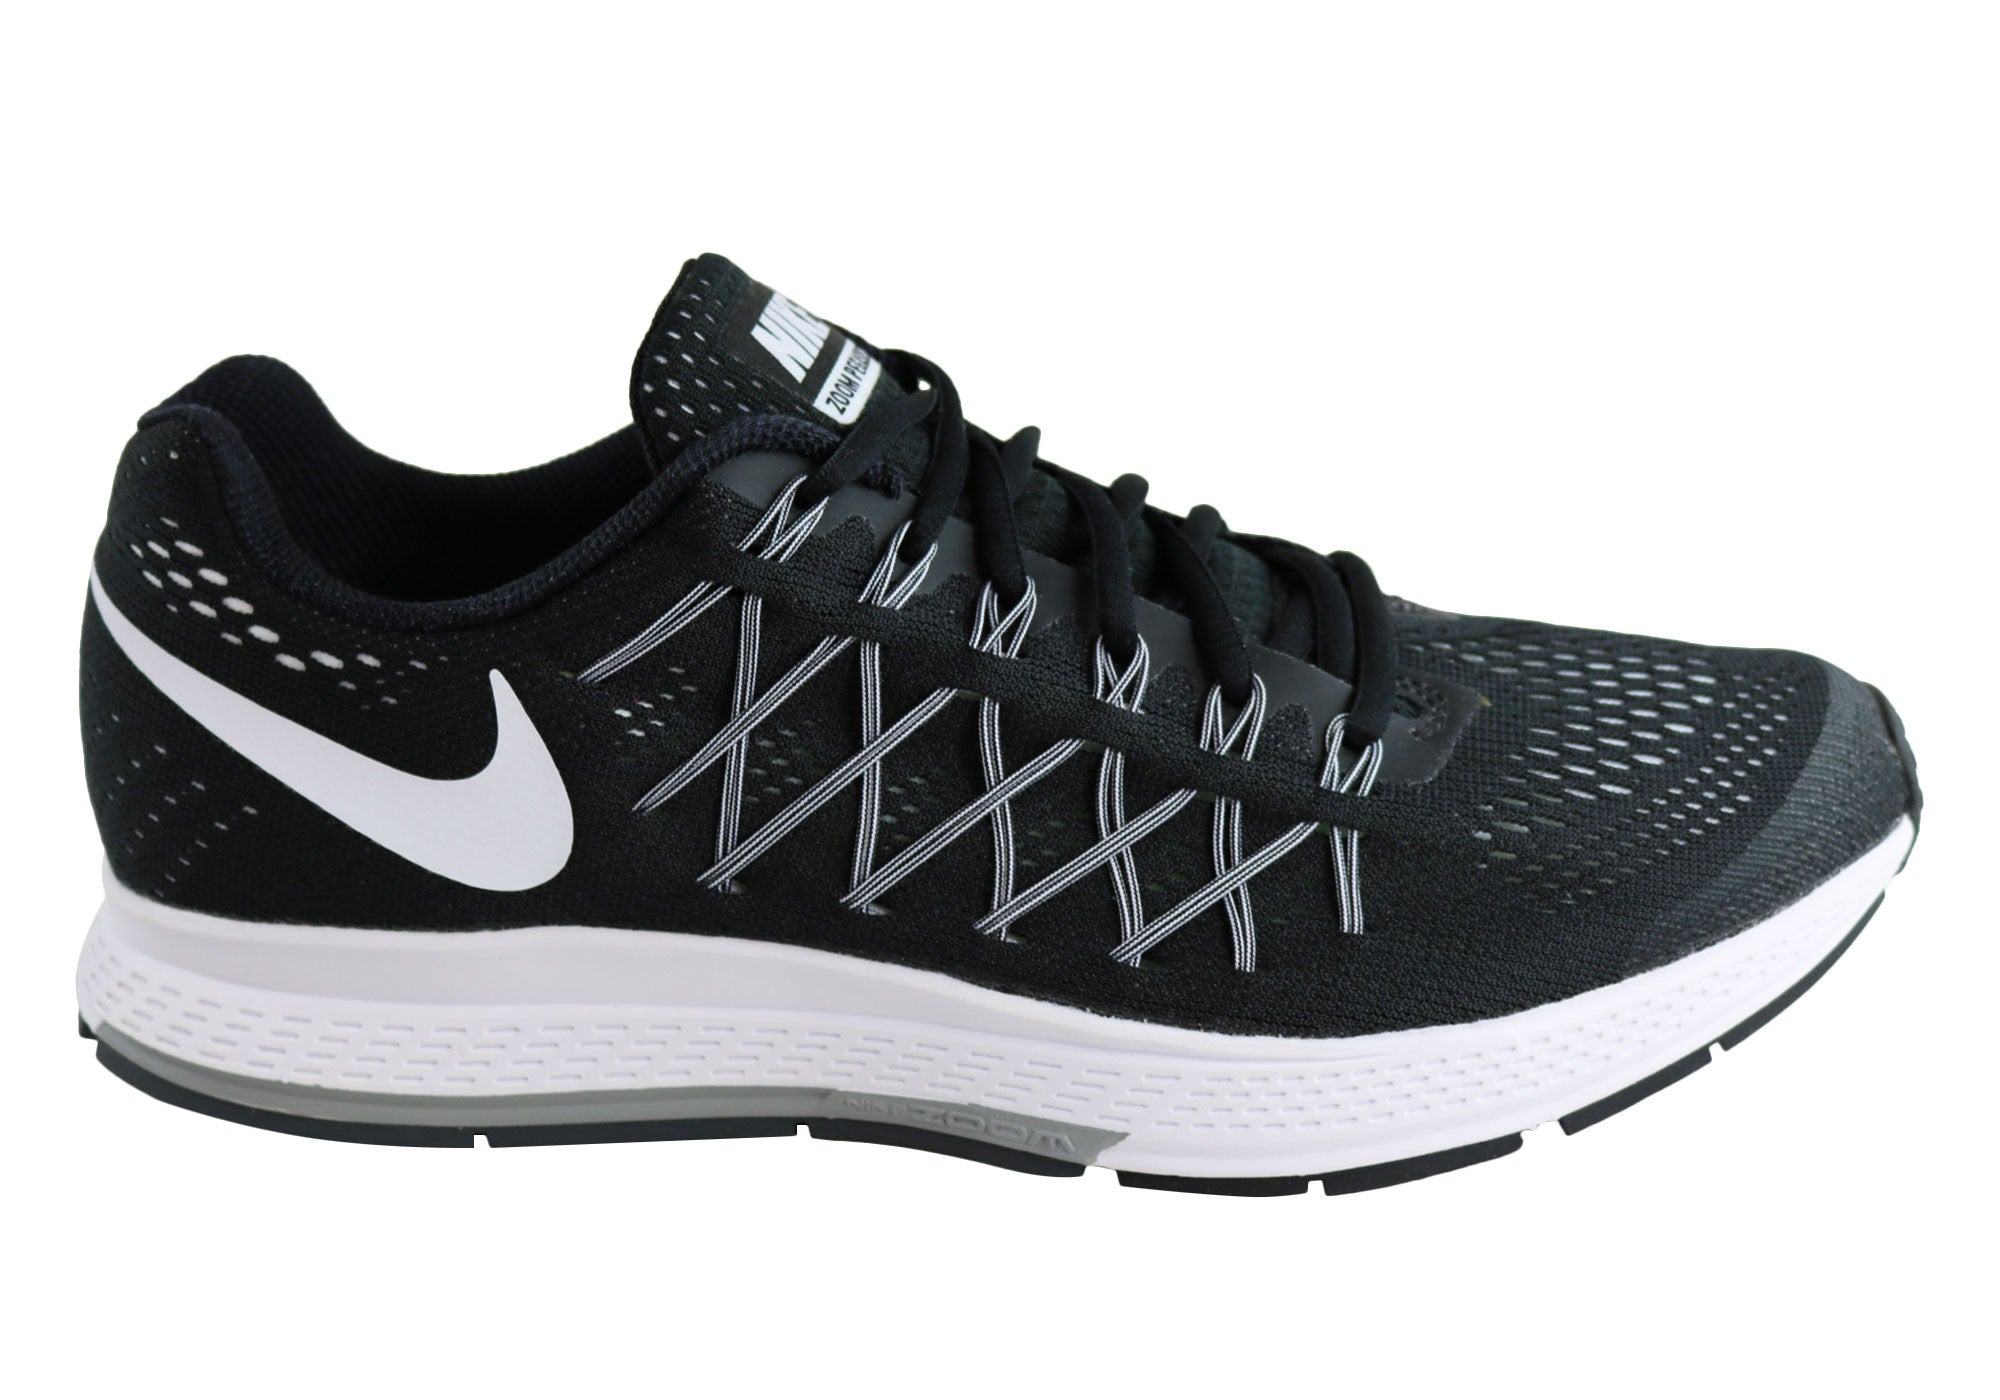 plus récent 2b7ab 1254d Nike Mens Air Zoom Pegasus 32 Premium Cushioned Sports/Running Shoes